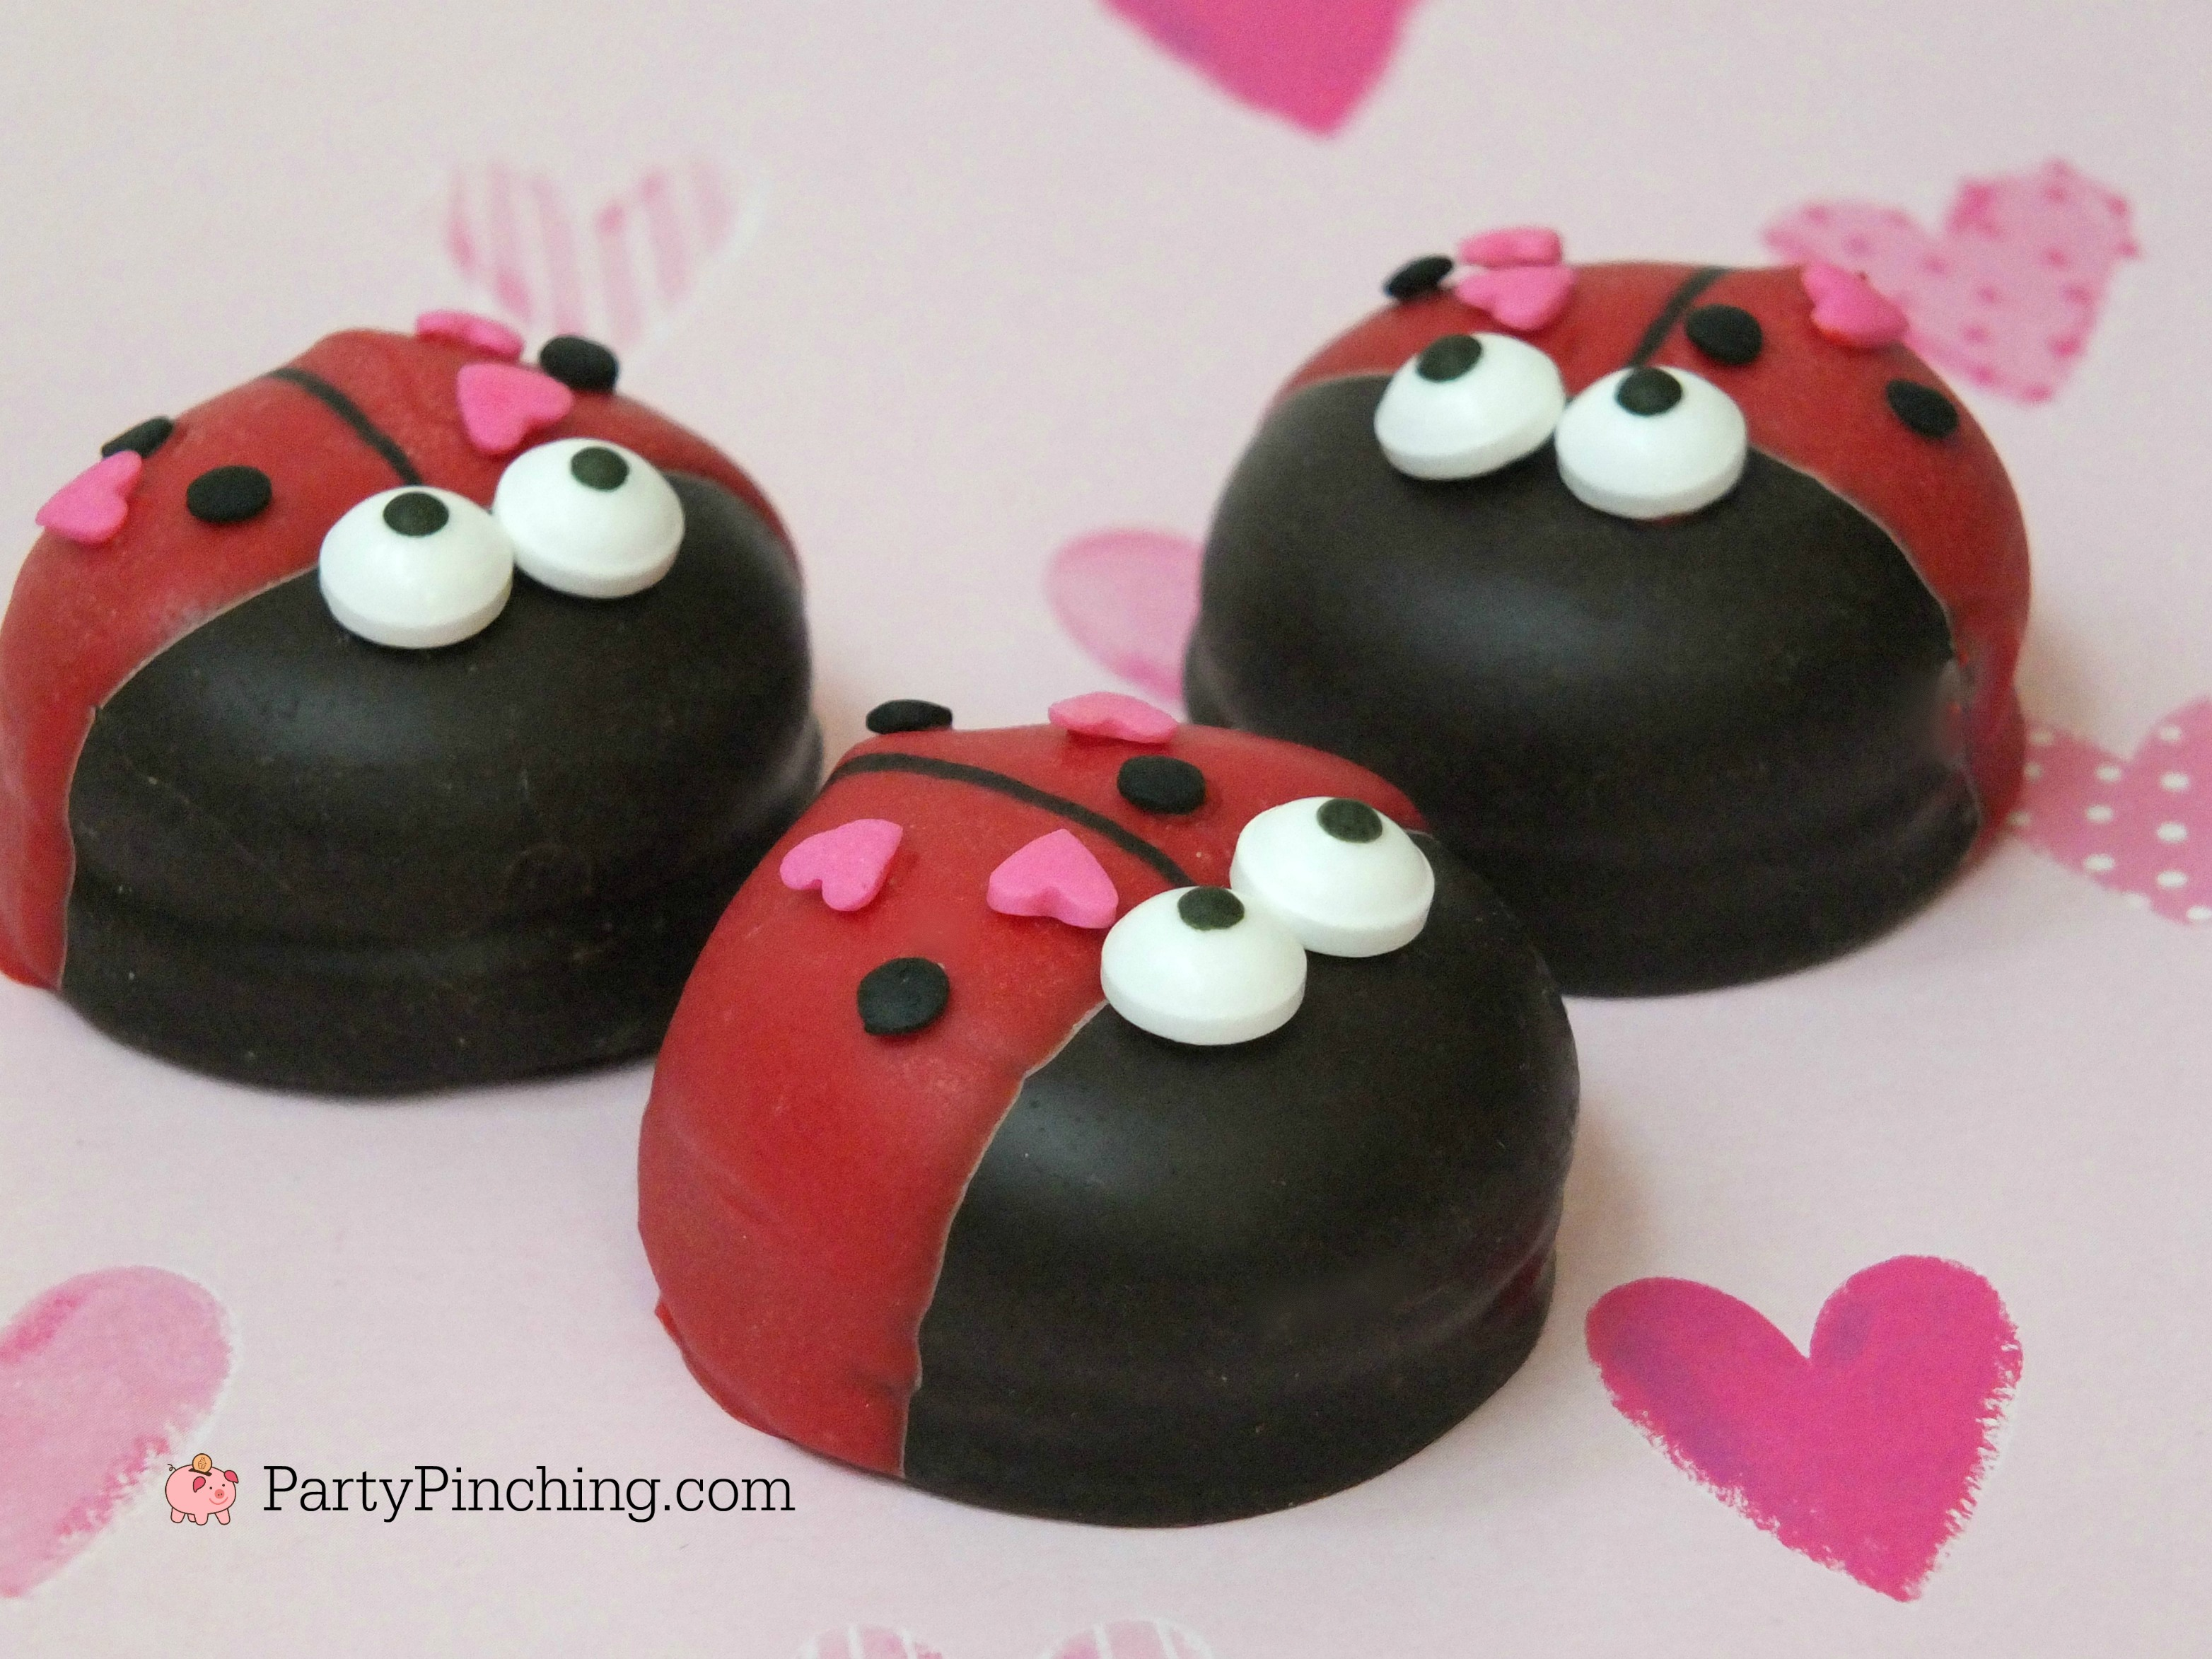 Valentine love bug craft - Valentine S Day Love Bug Mallomar Cookies Cute Cookies For Valentine S Day Adorable Treat Ideas